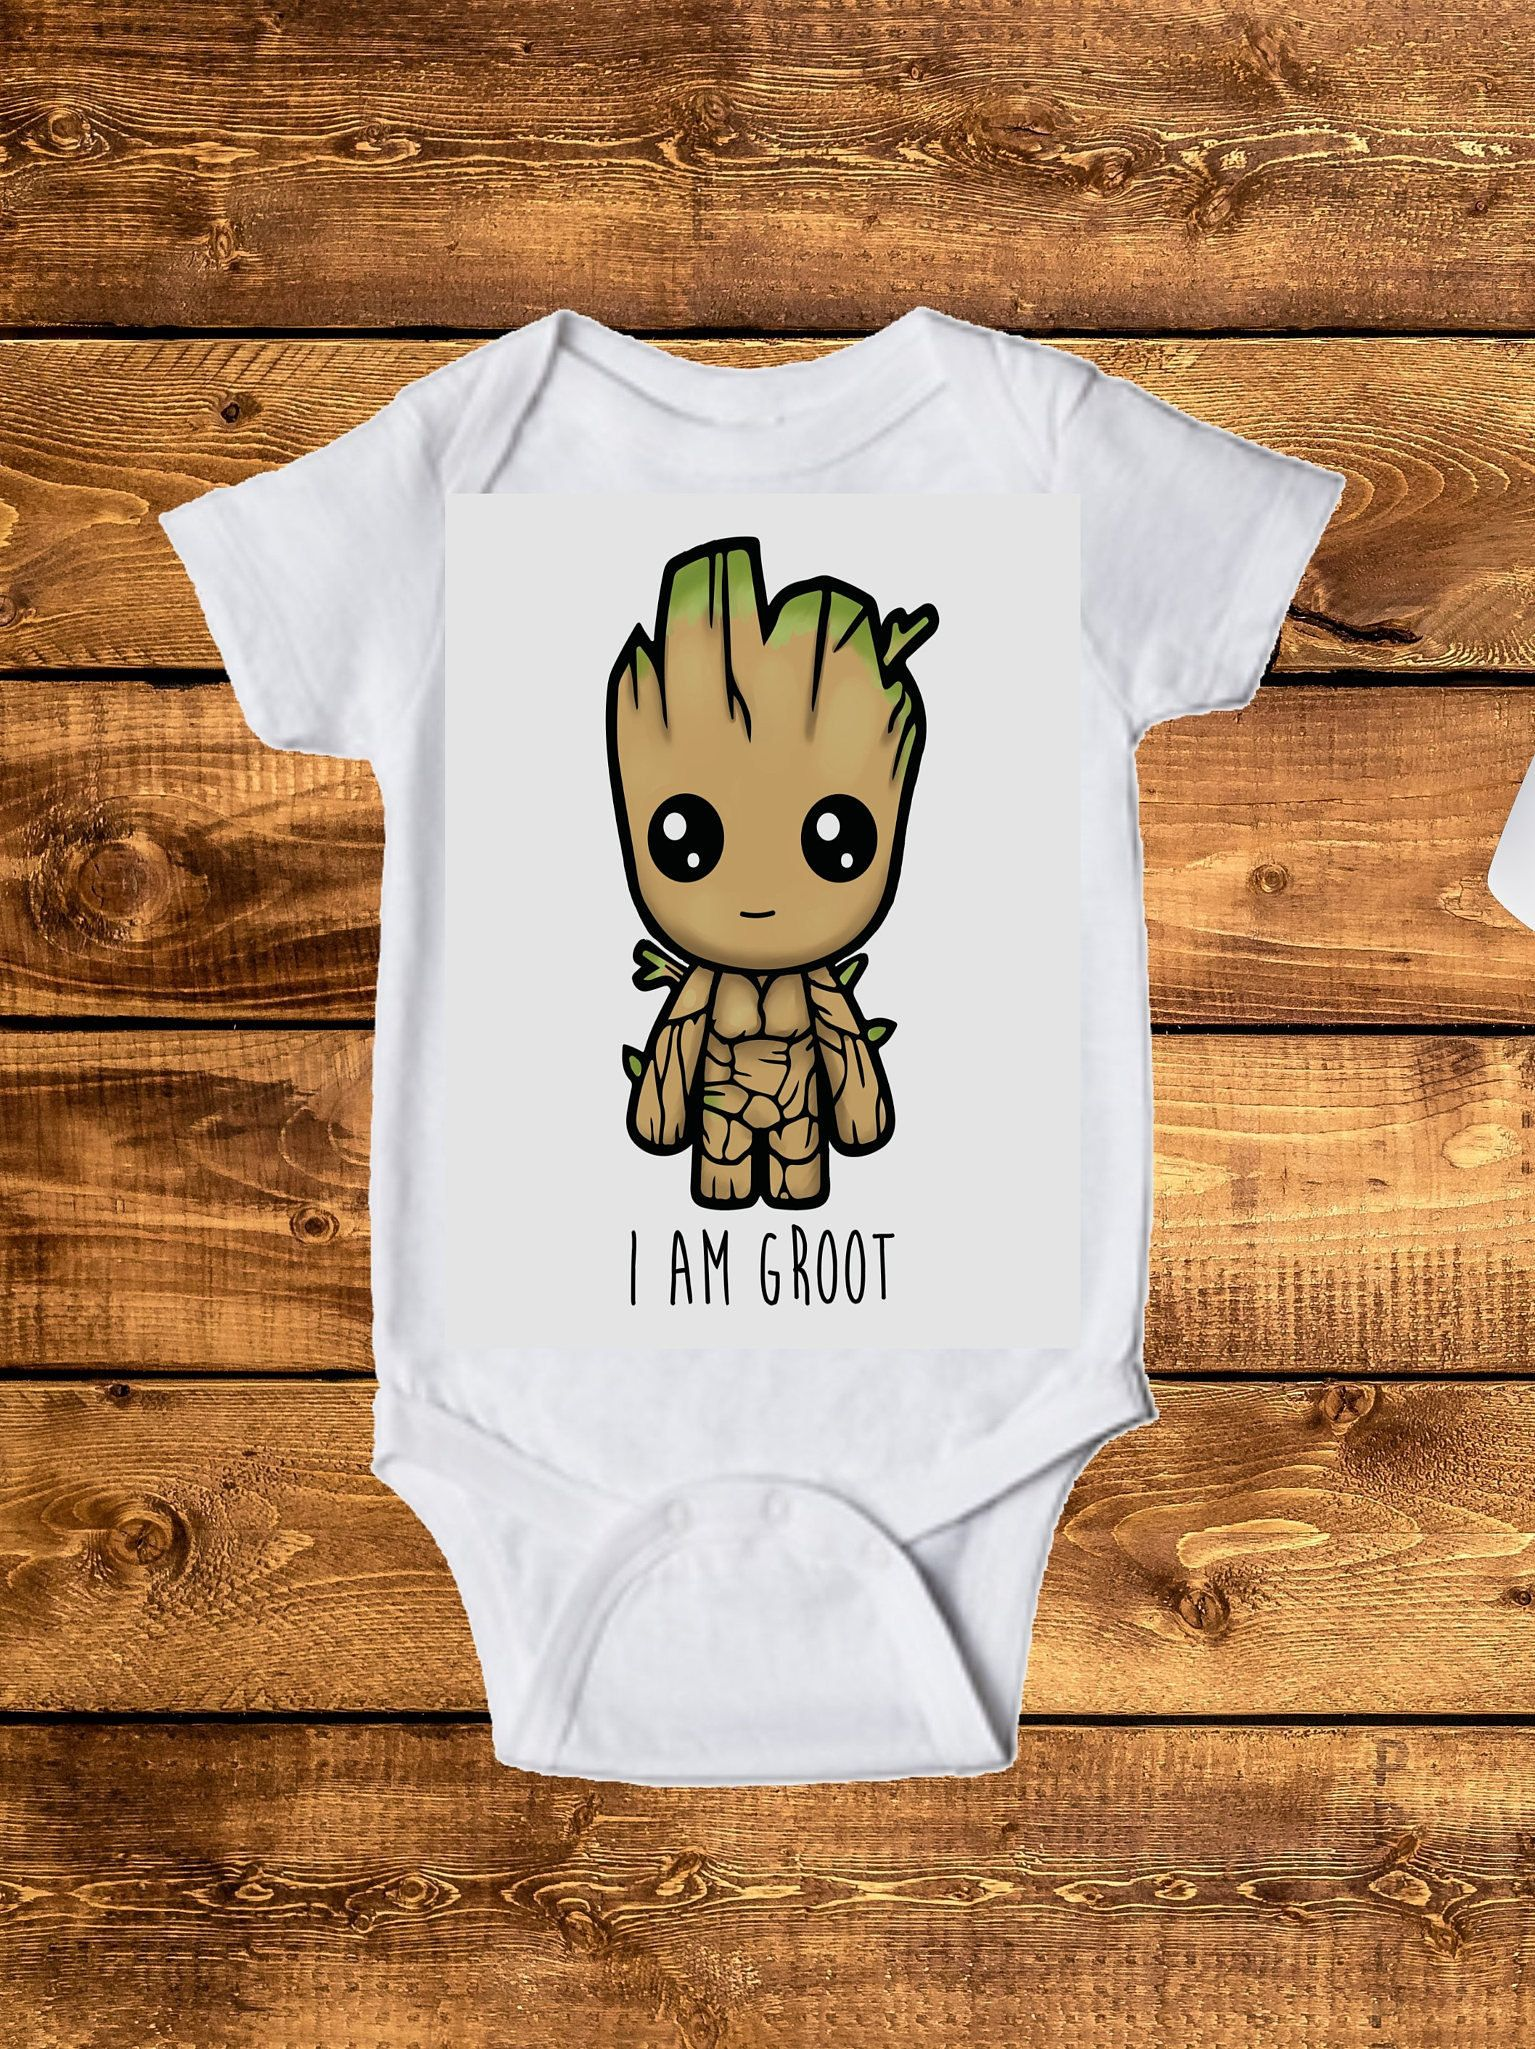 0b1d575a6 Groot inspired Onesie, I AM Groot Toddler Tee, Baby Onesie, infant  clothing, children's clothing, toddler clothes, by LeopardVinylDesigns on  Etsy